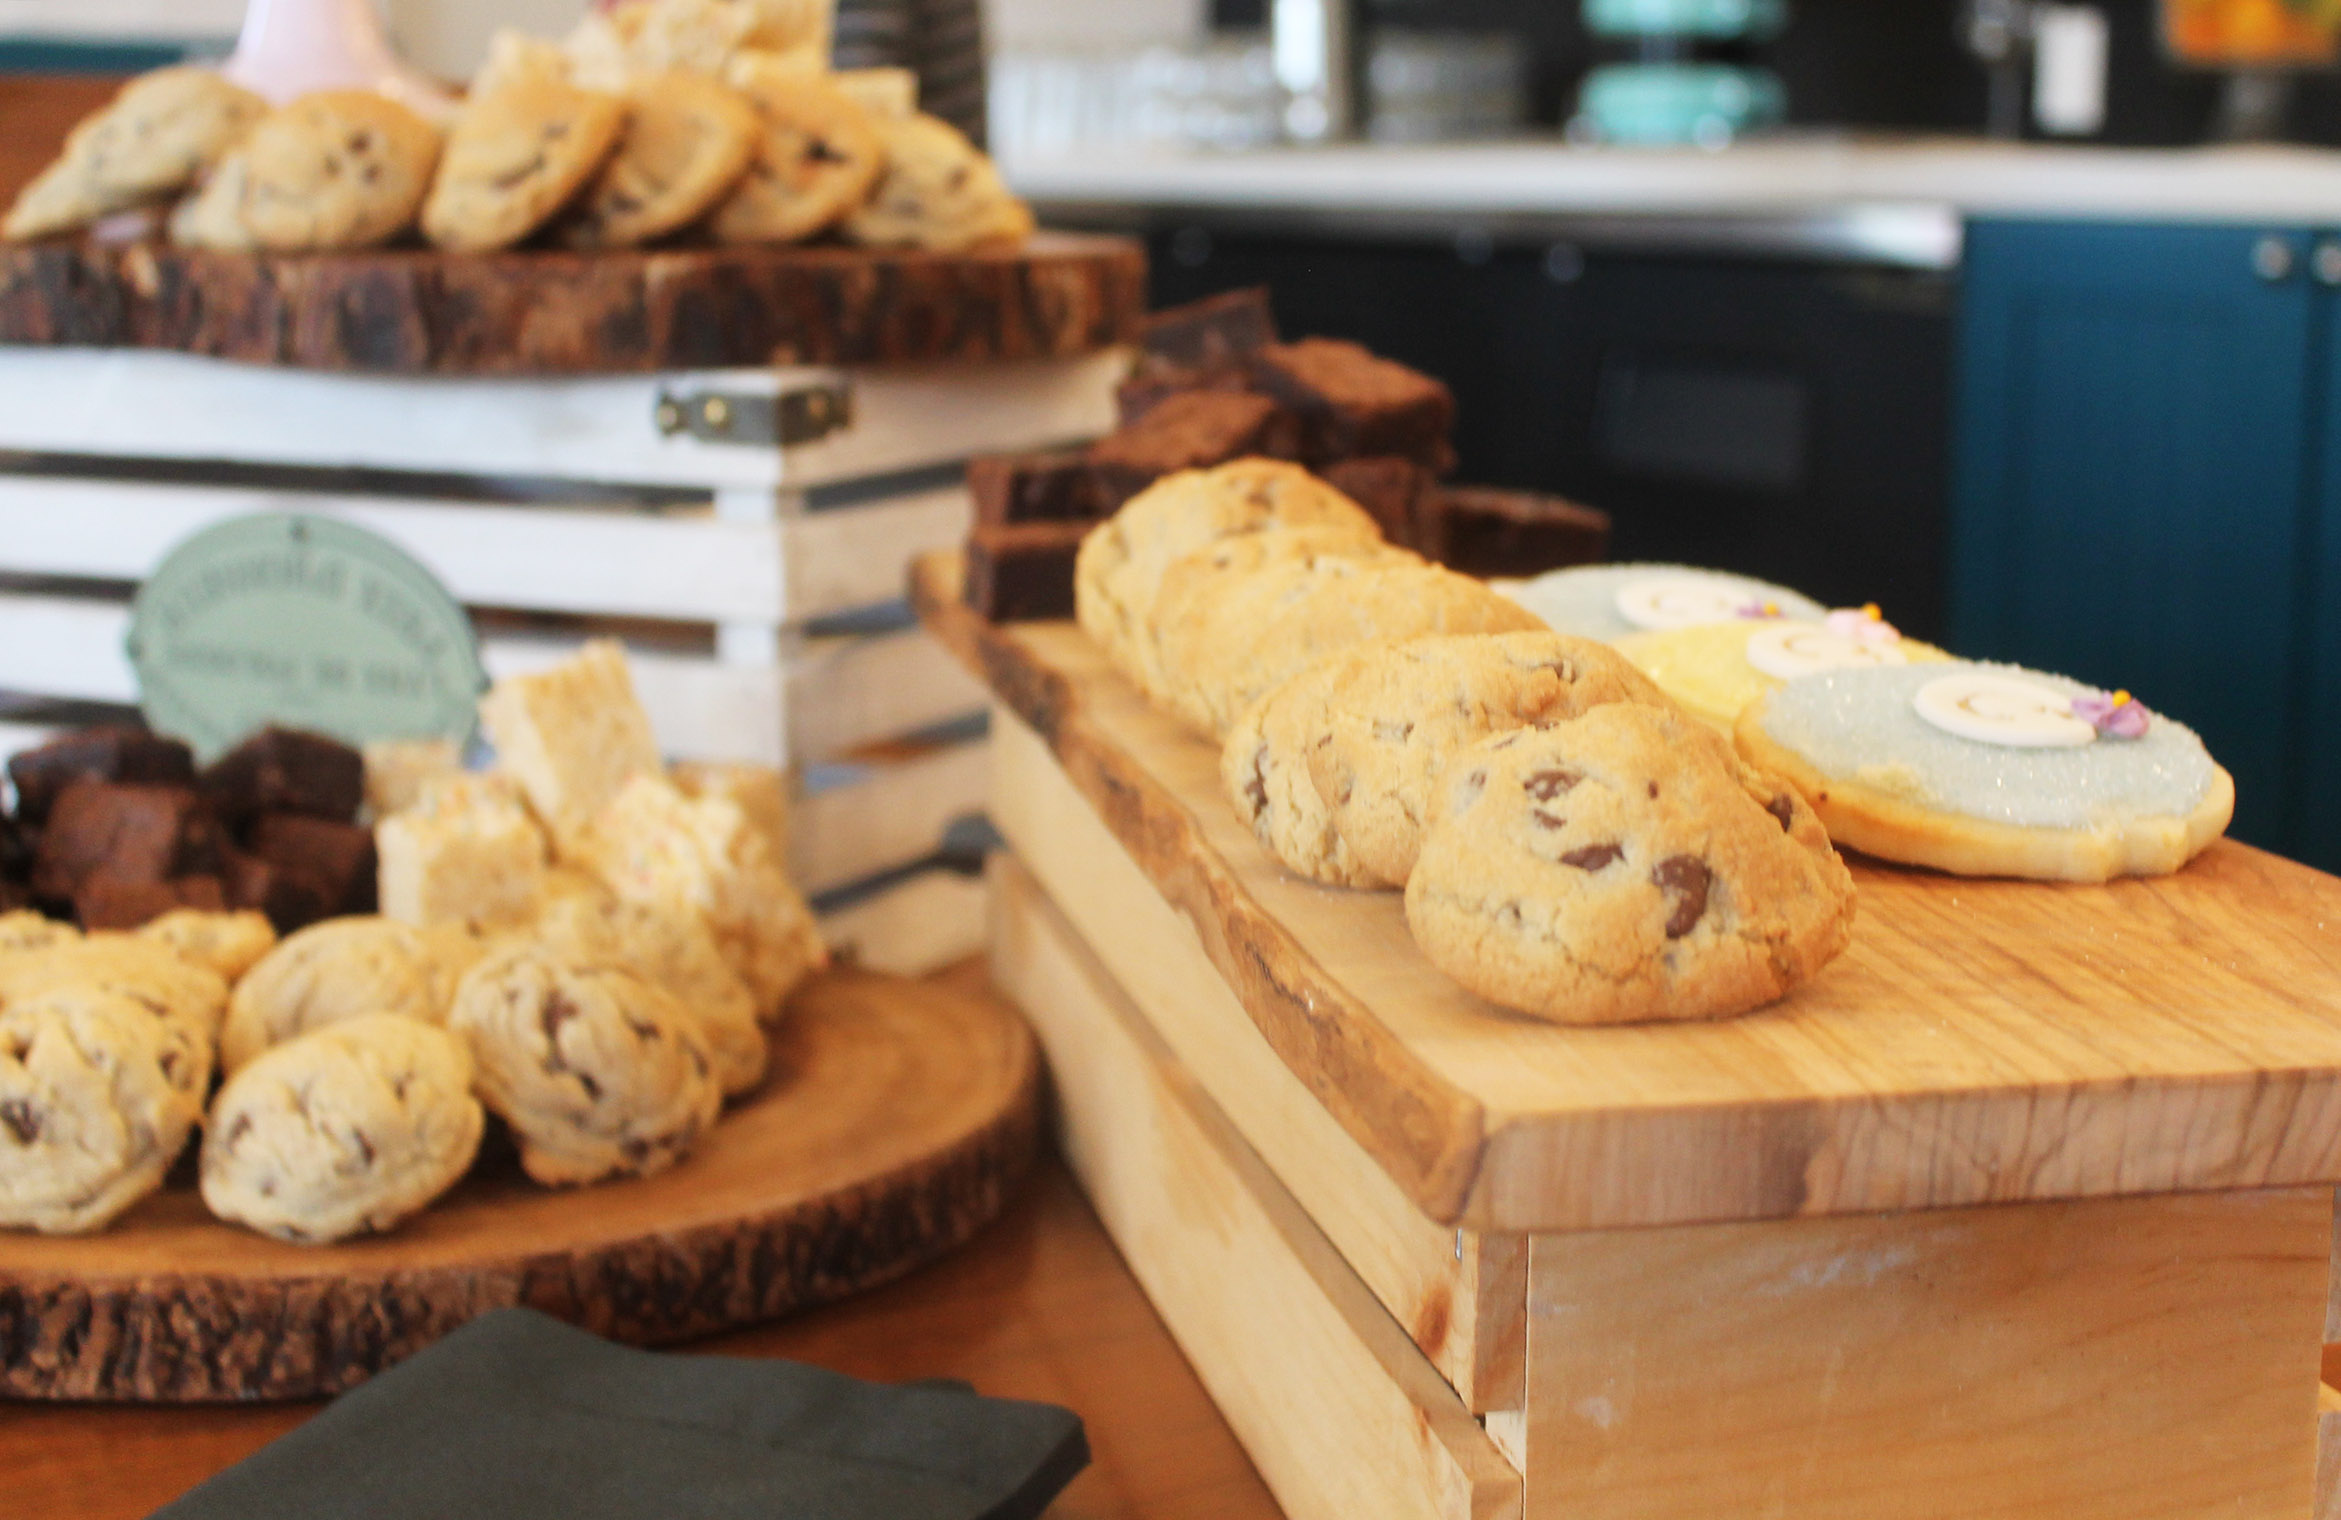 A Selection of Baked Goods